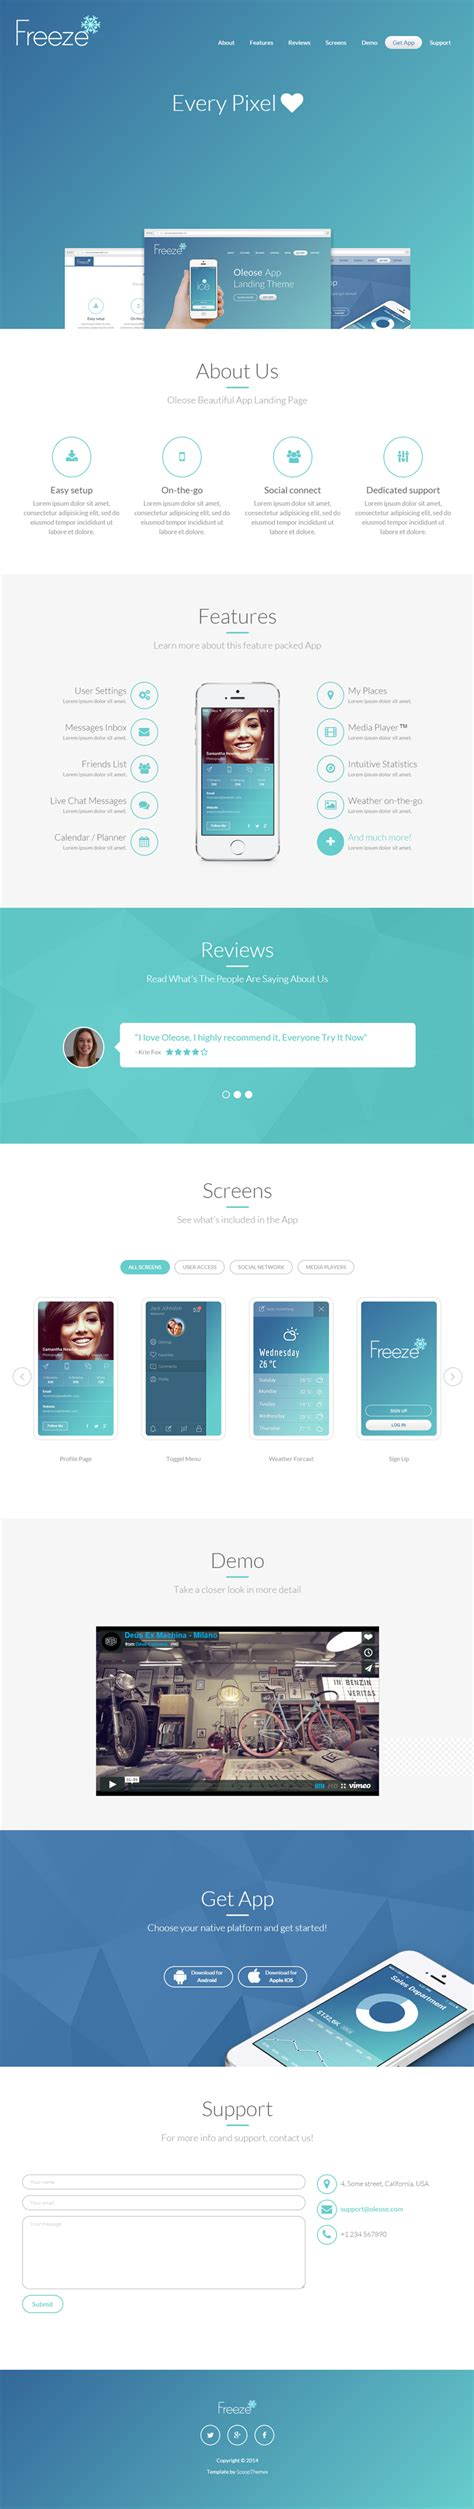 bootstrap themes oleose oleose mobile bootstrap app landing page bypeople